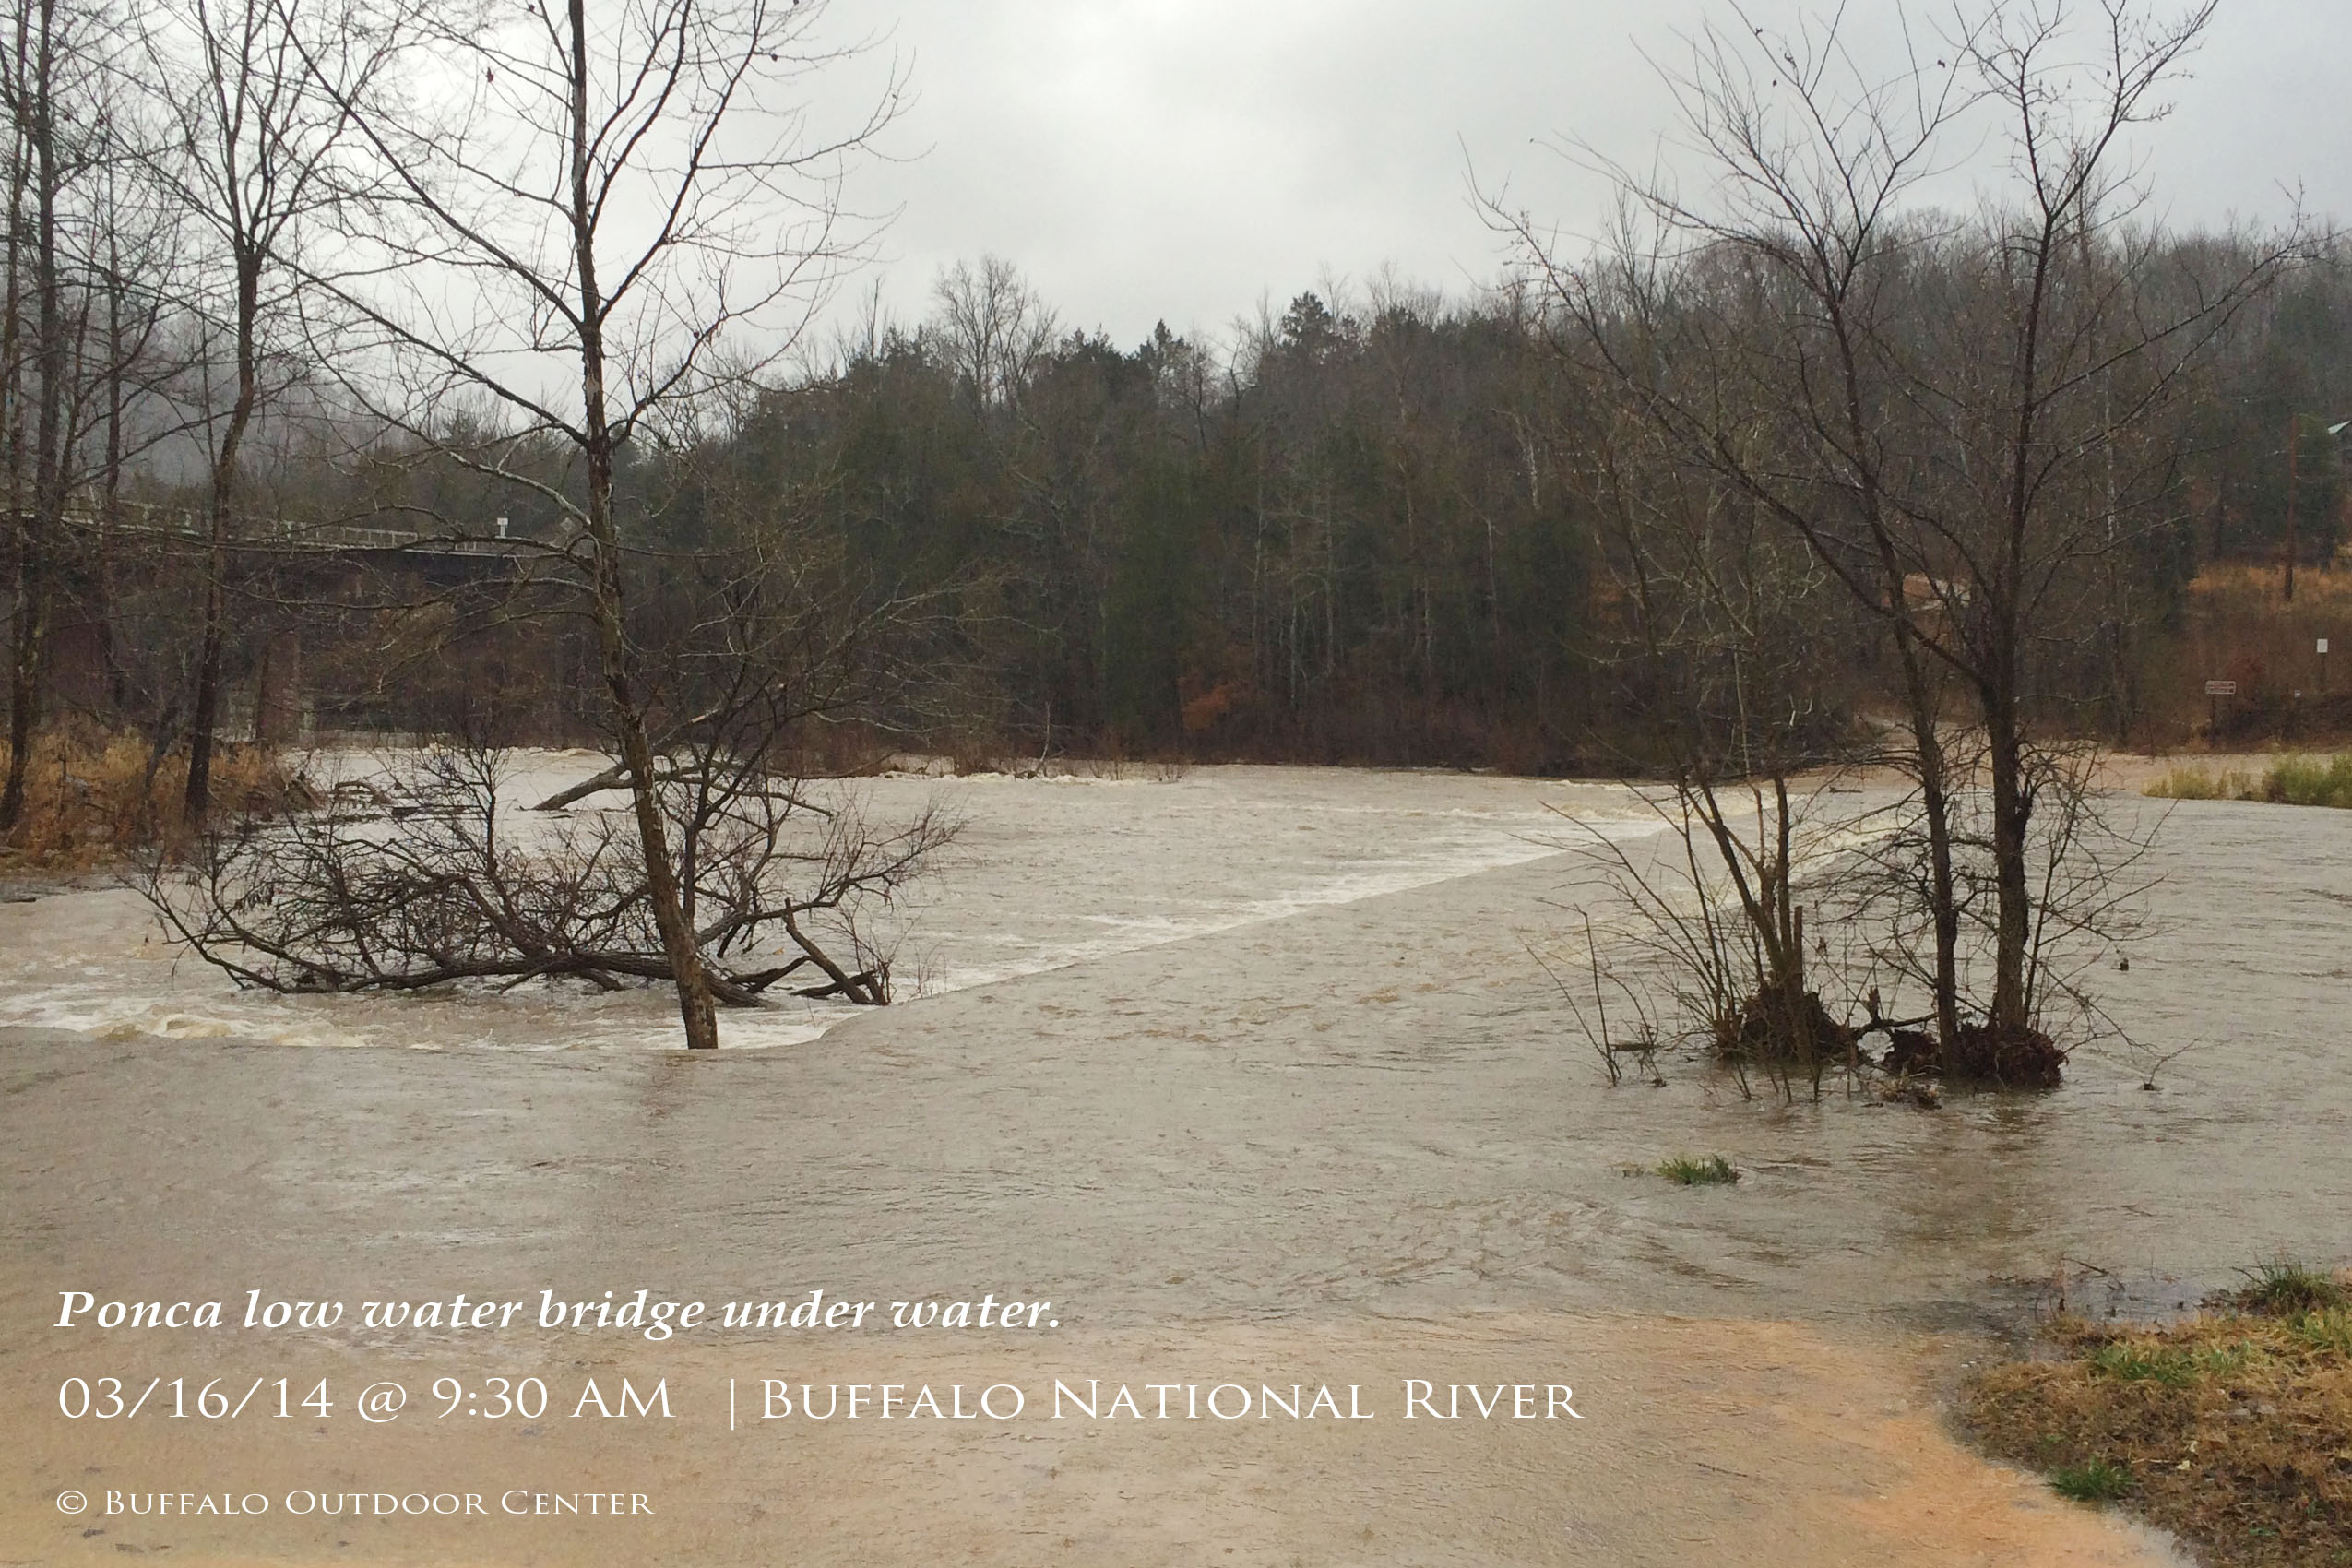 New Rainfall Has Upper Buffalo River Ready for Spring Break